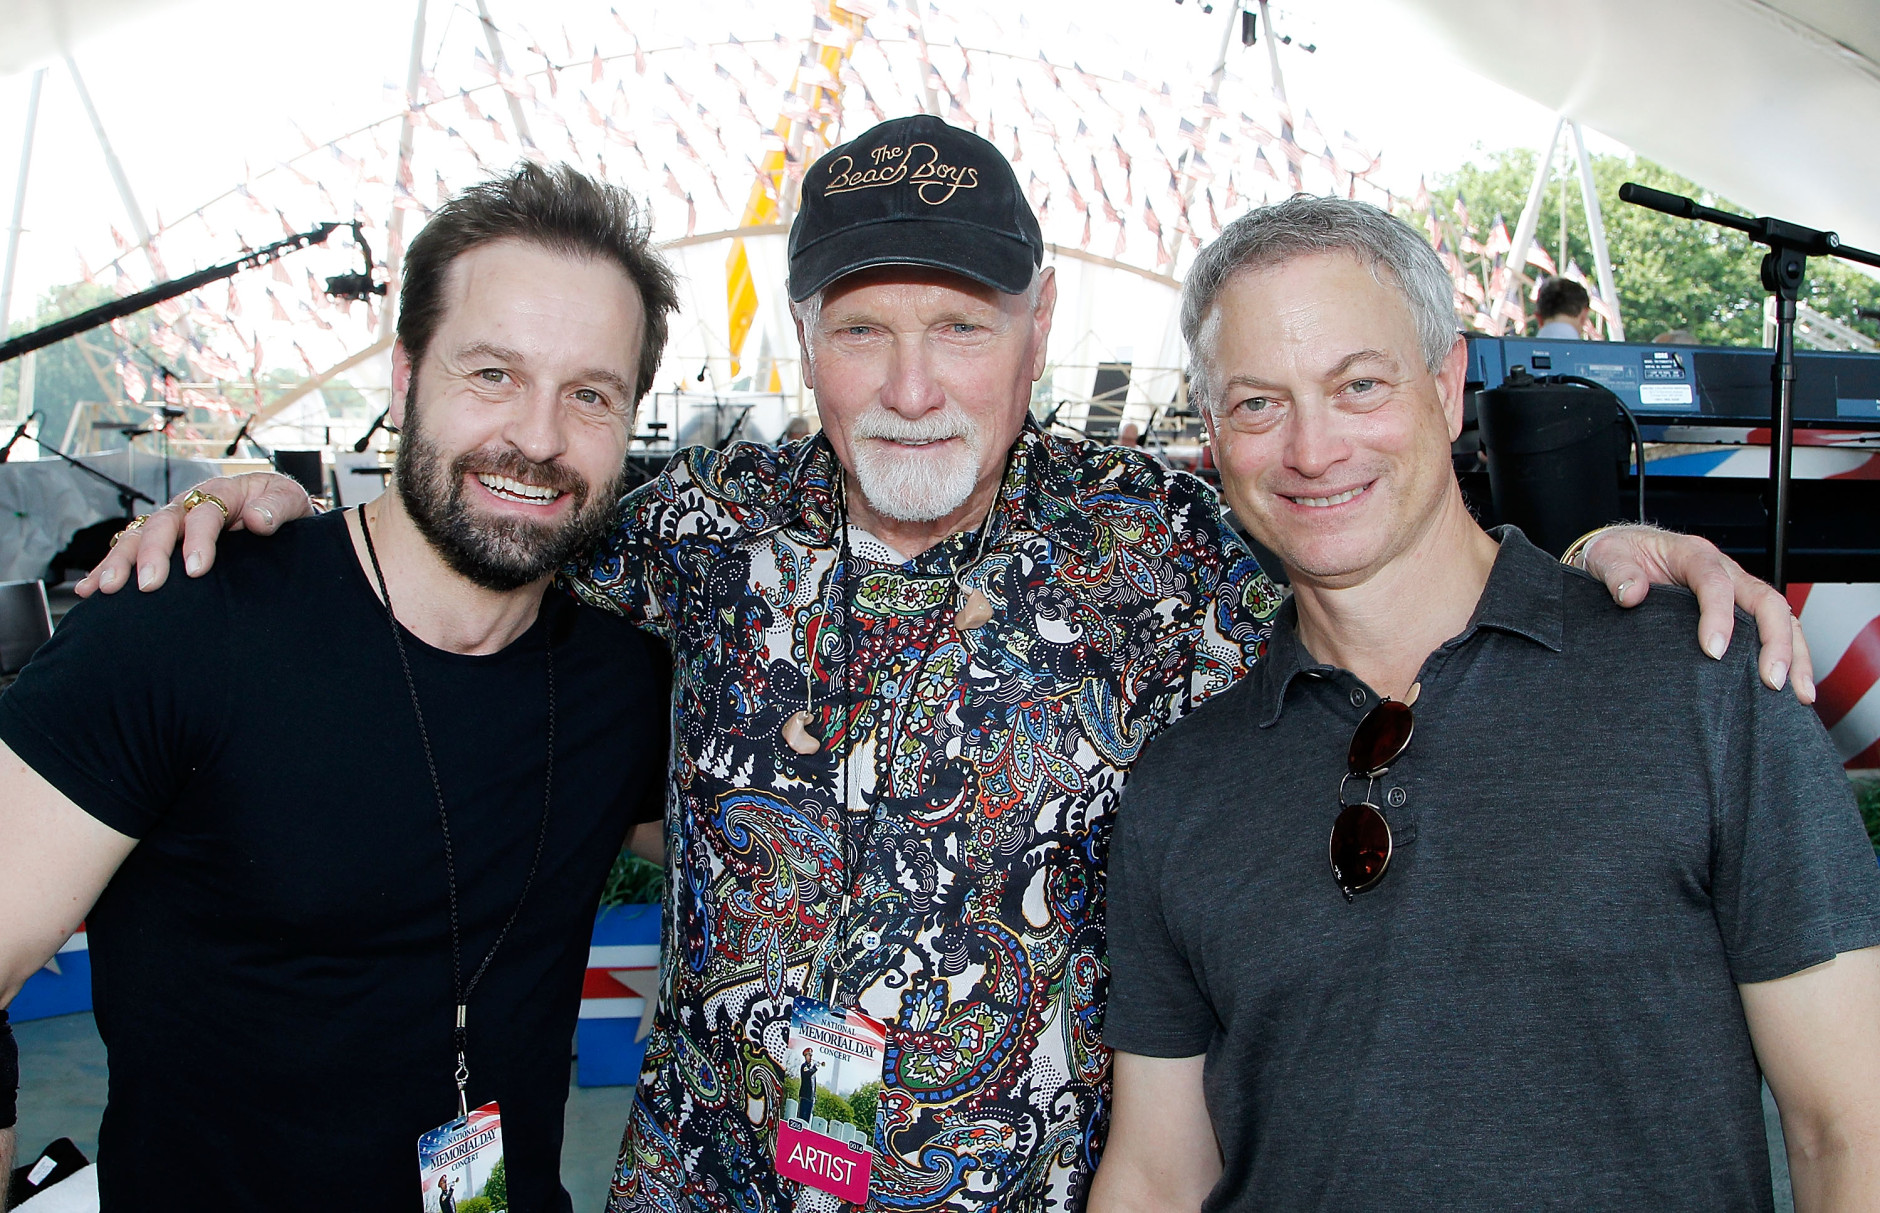 WASHINGTON, DC - MAY 28:  (L to R) Tenor Alfie Boe, Mike Love of The Beach Boys and actor Gary Sinise pose for a photo during the 27th National Memorial Day Concert Rehearsals on May 28, 2016 in Washington, DC.  (Photo by Paul Morigi/Getty Images for Capitol Concerts)